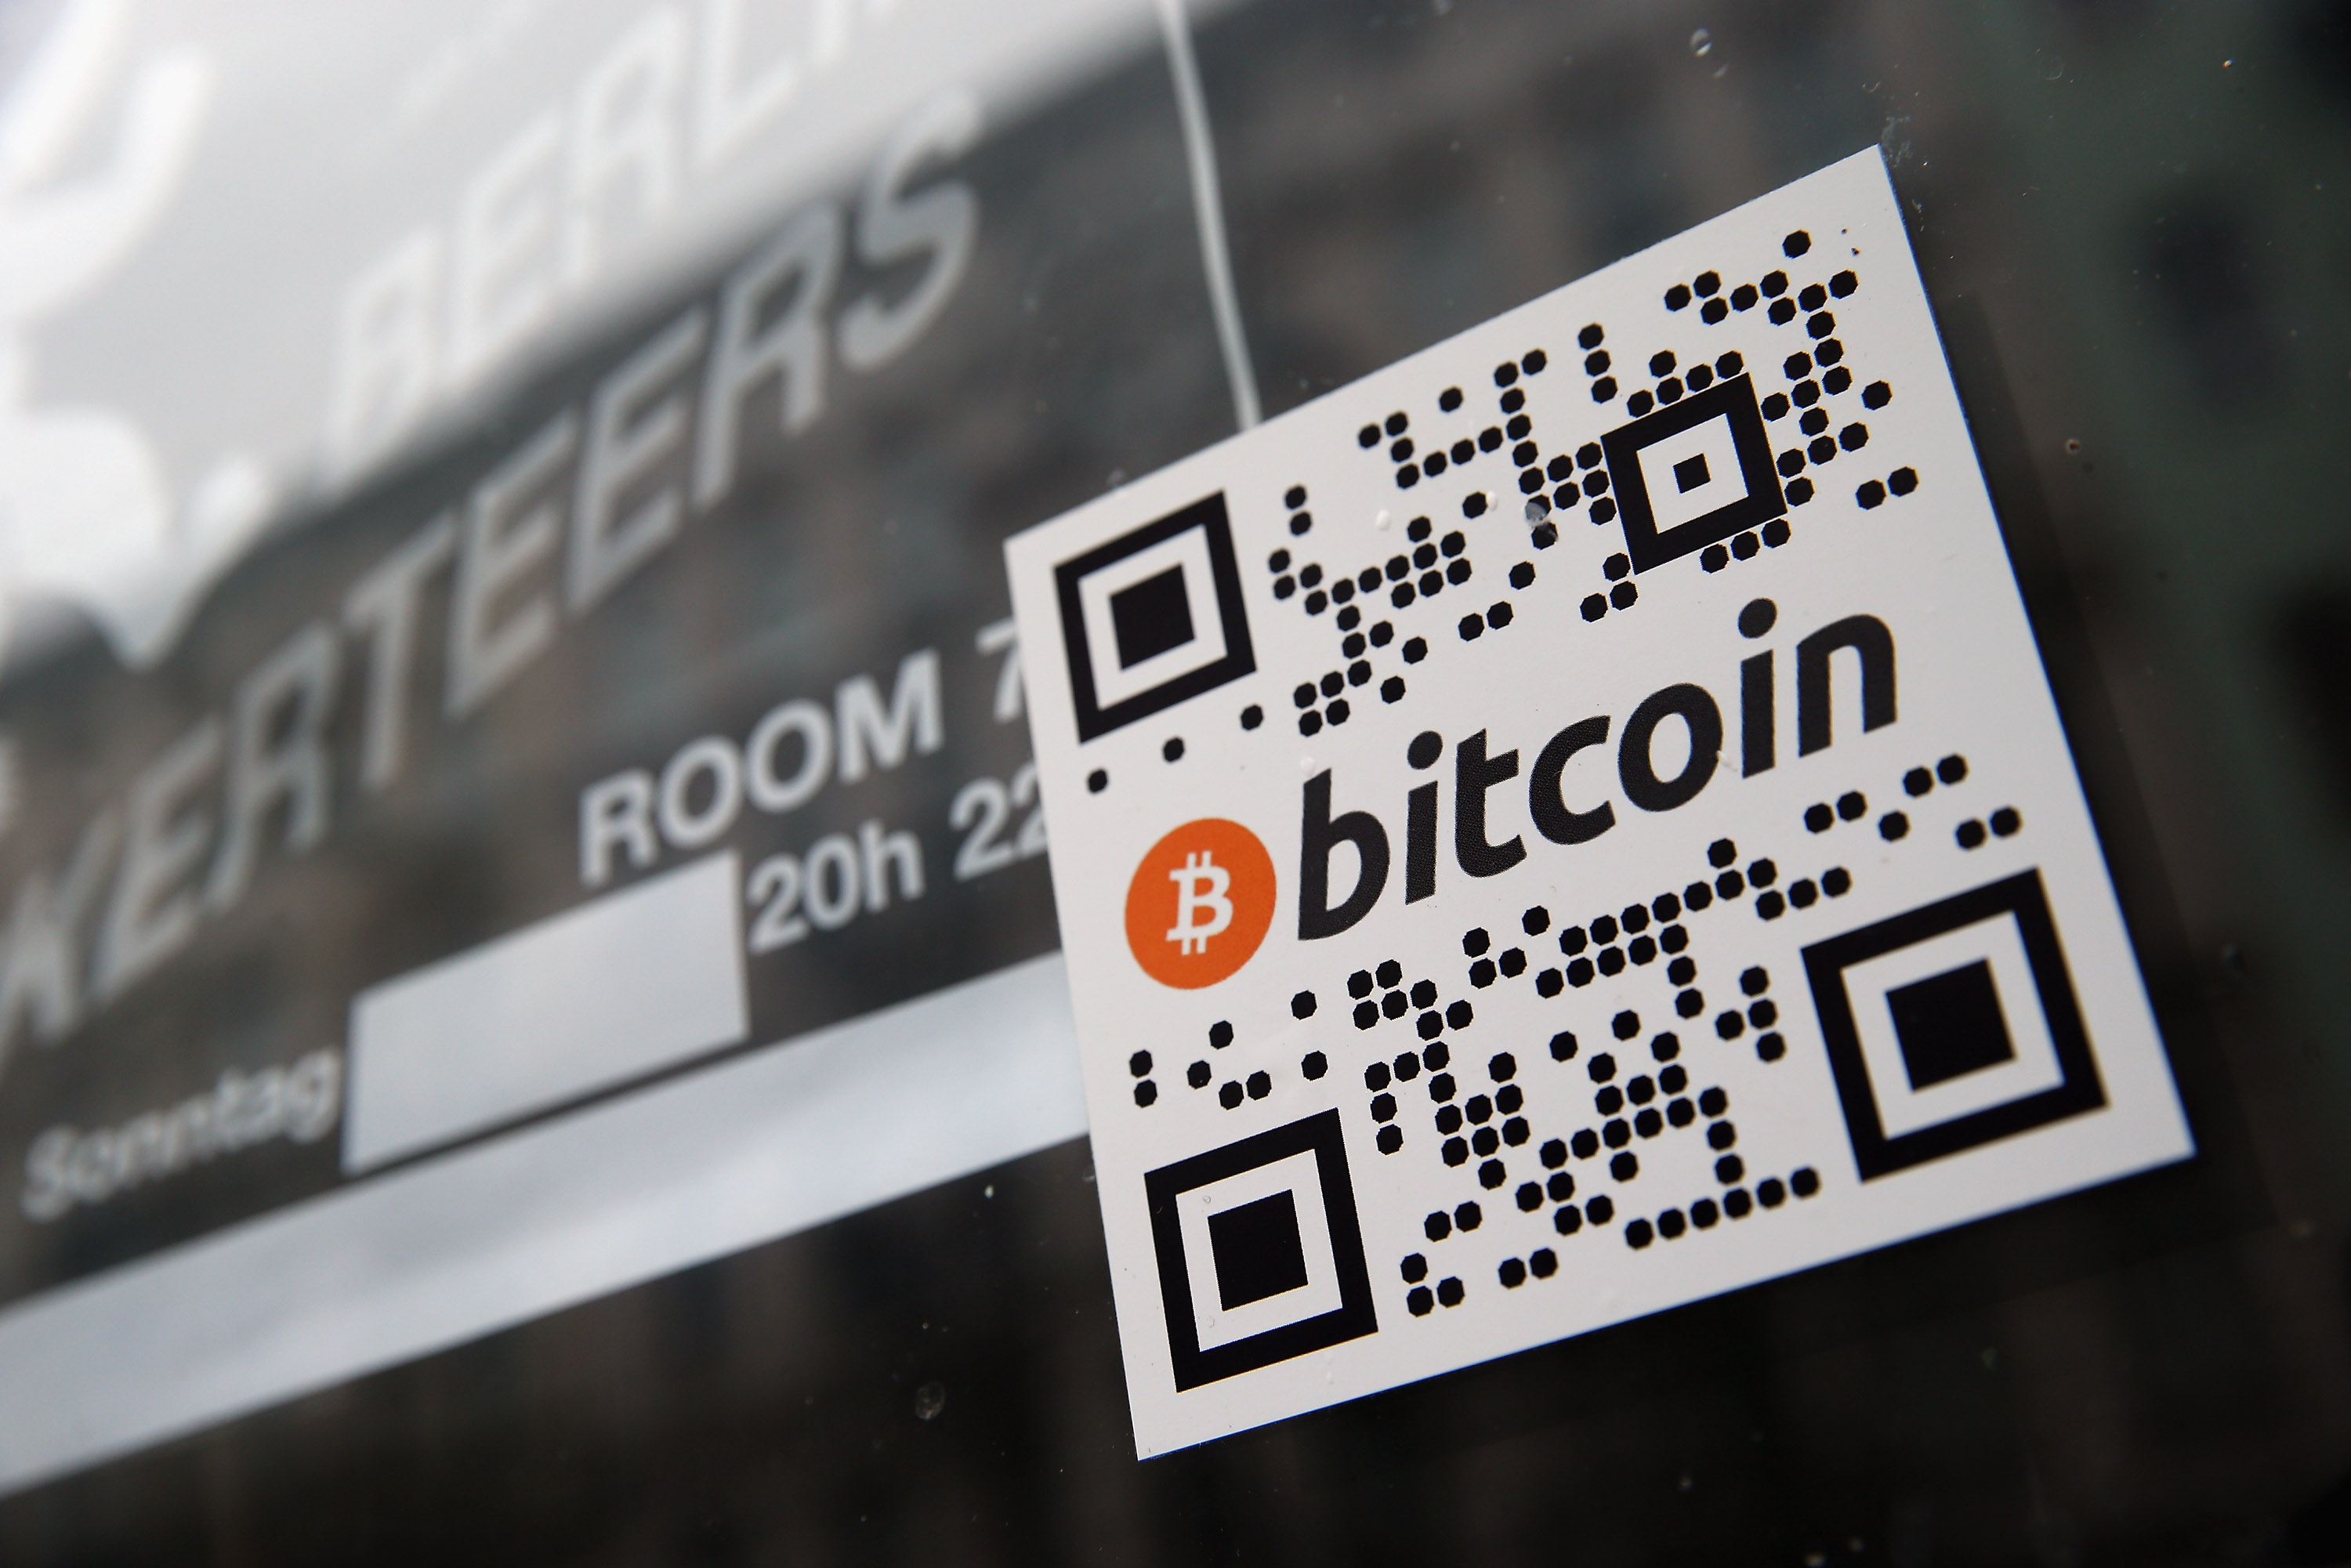 We're getting closer to being able to track stolen bitcoins